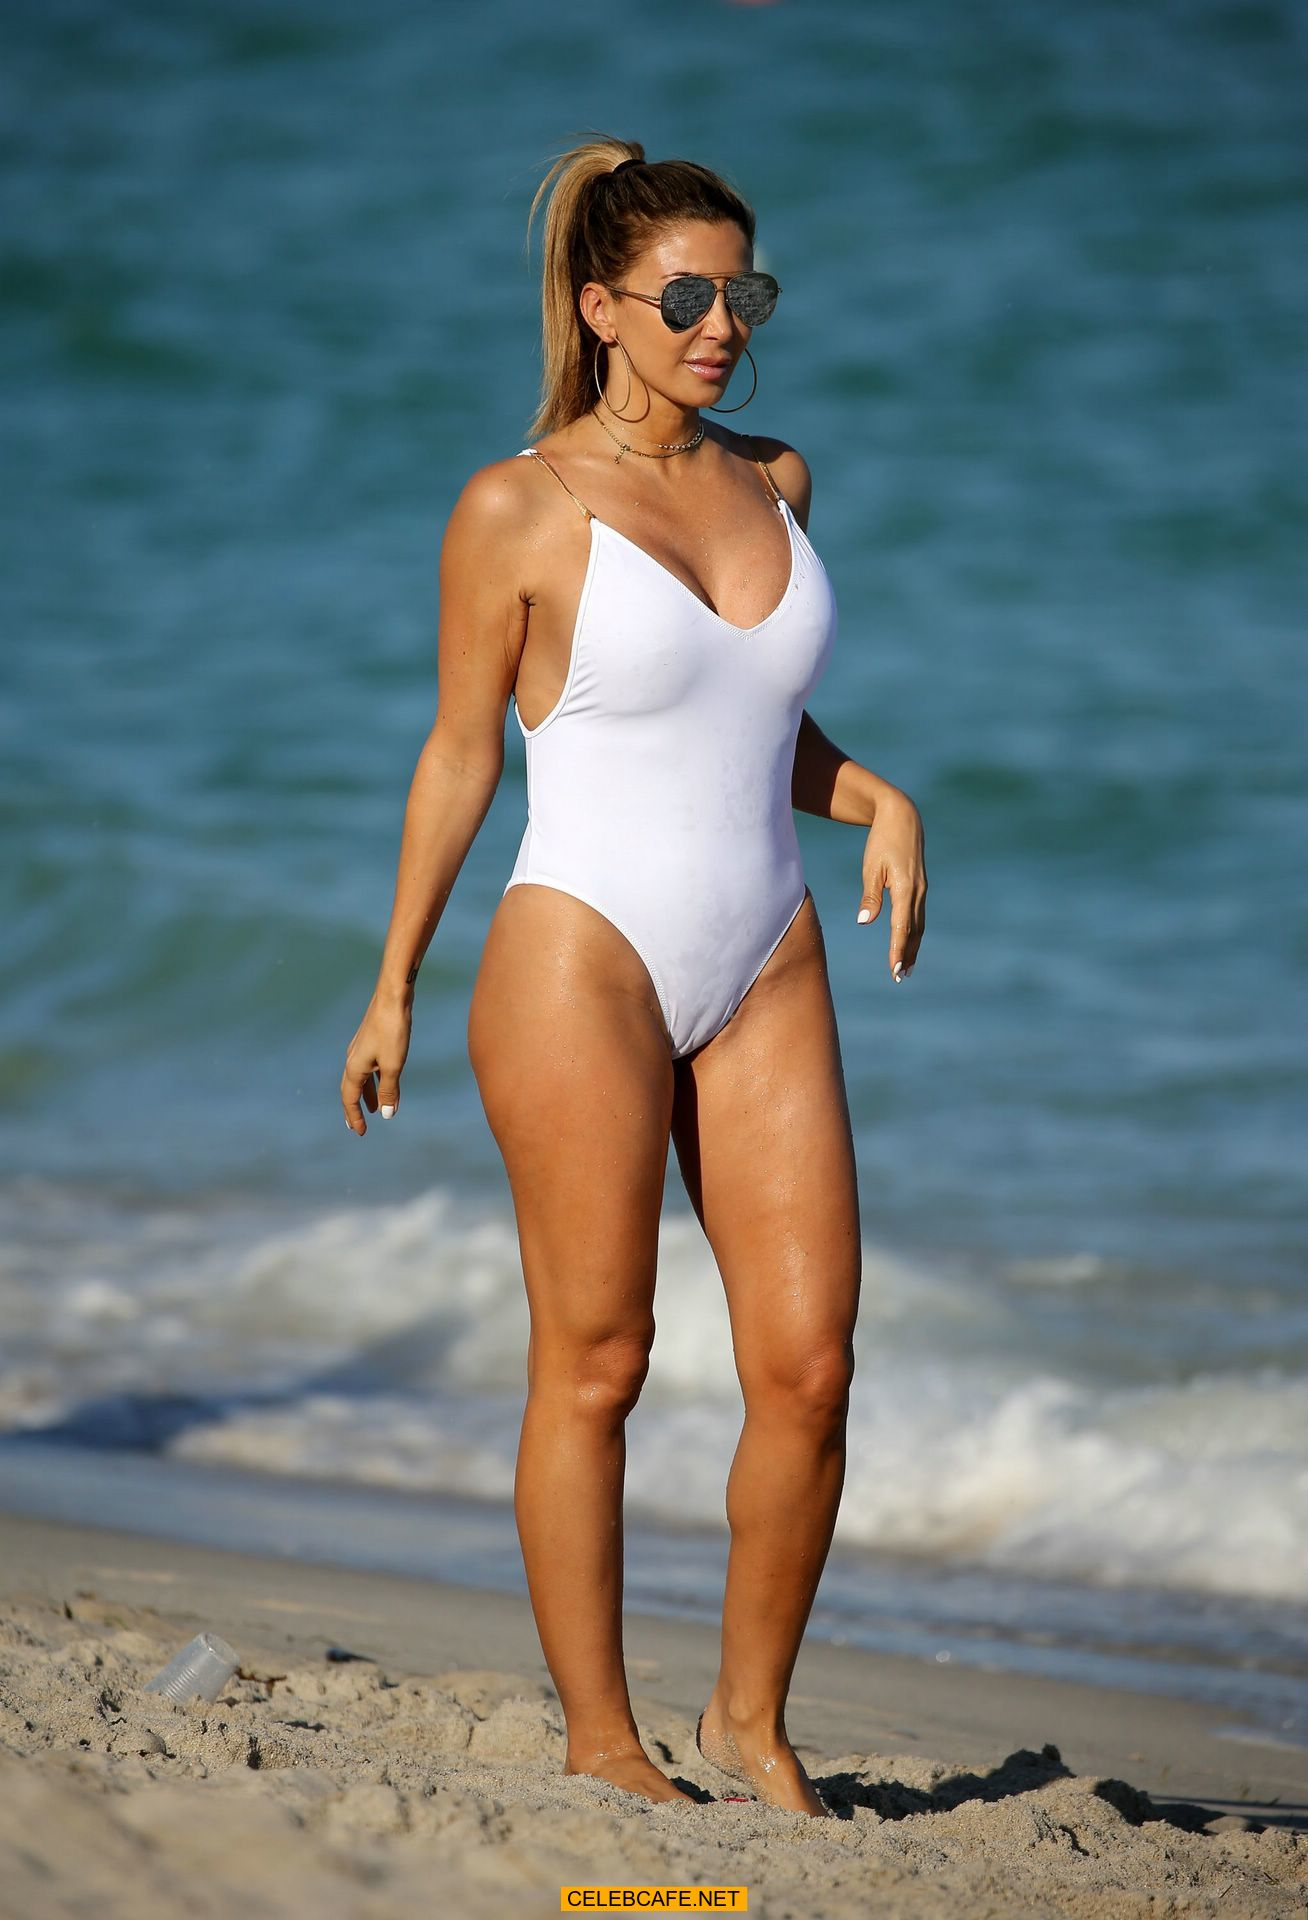 larsa pippen shows camel toe in a white swimsuit on the neach in miami